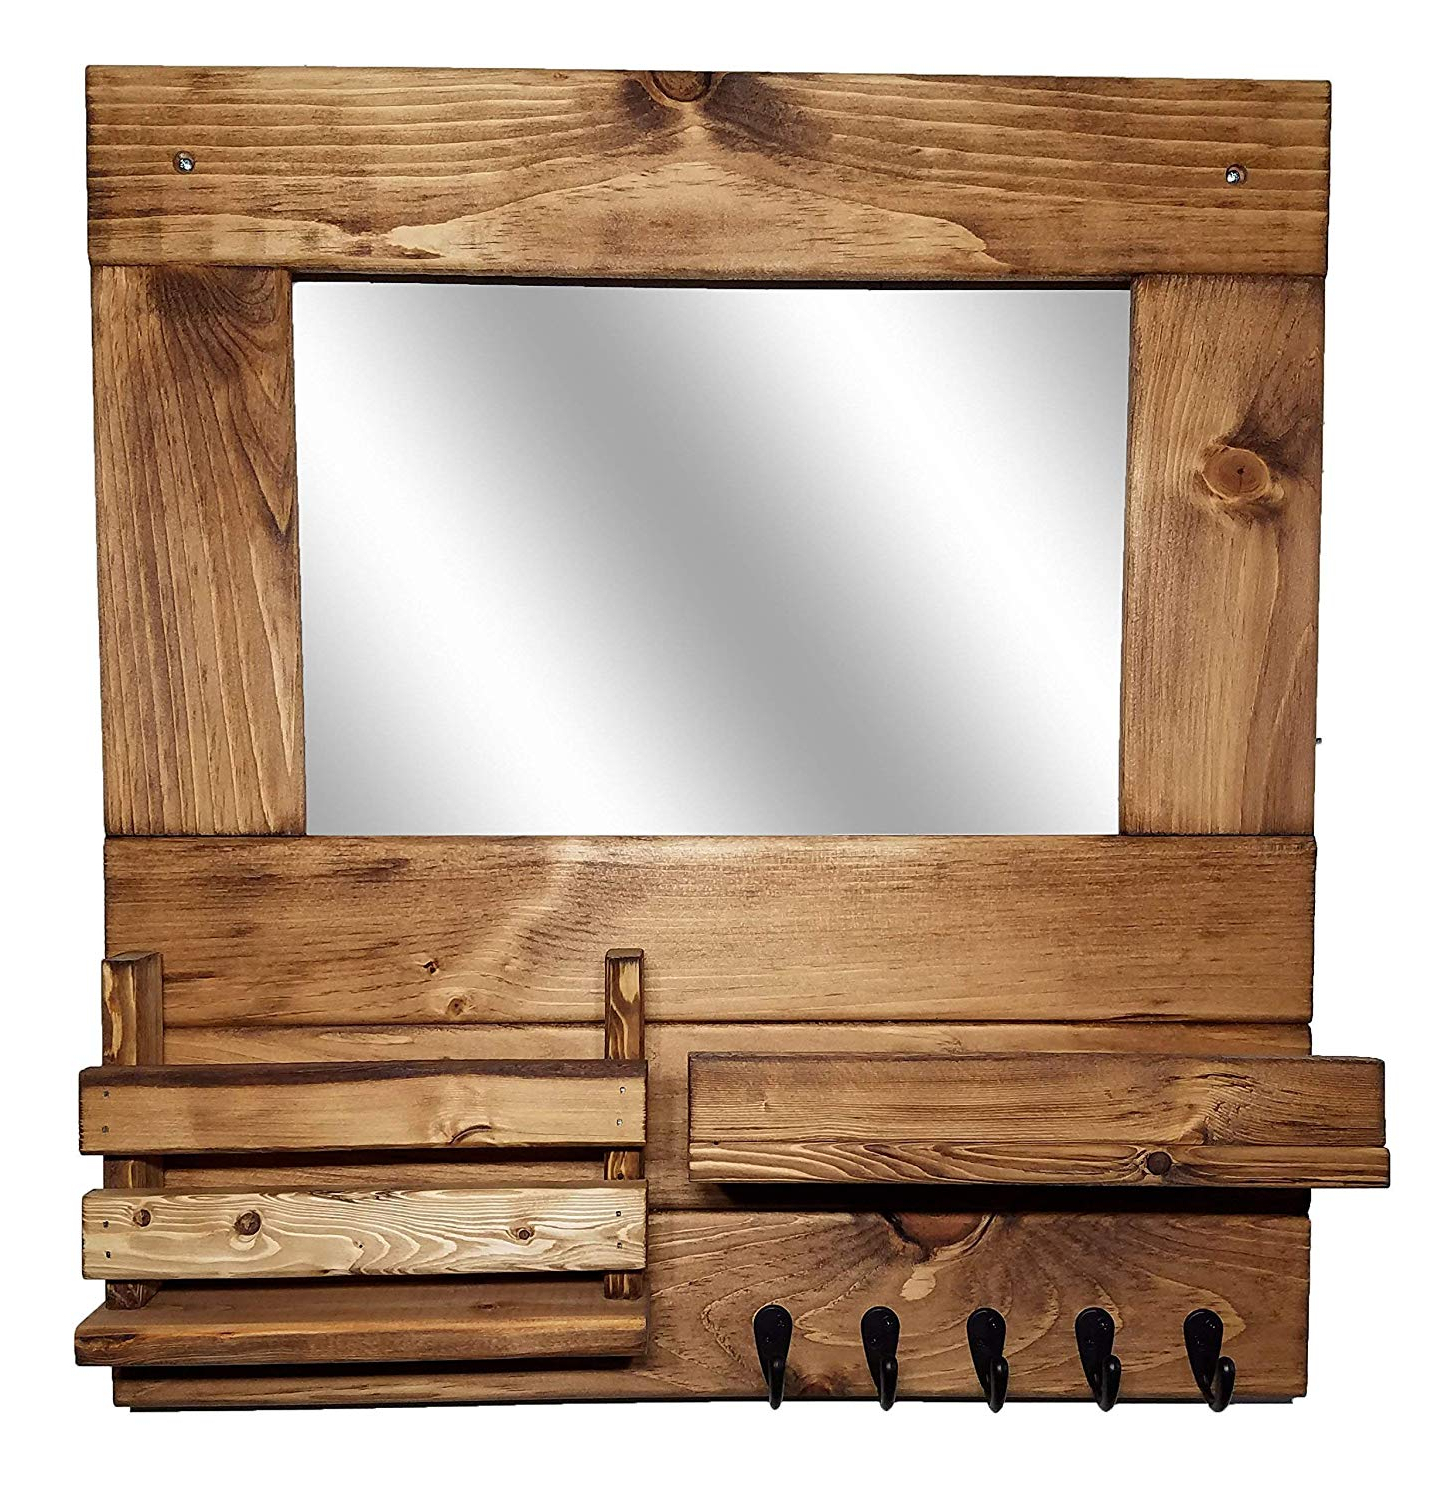 Amazon: Farmhouse Entryway Rustic Mirror Wall Mount Wall In Current Wall Mirrors With Shelf And Hooks (Gallery 14 of 20)